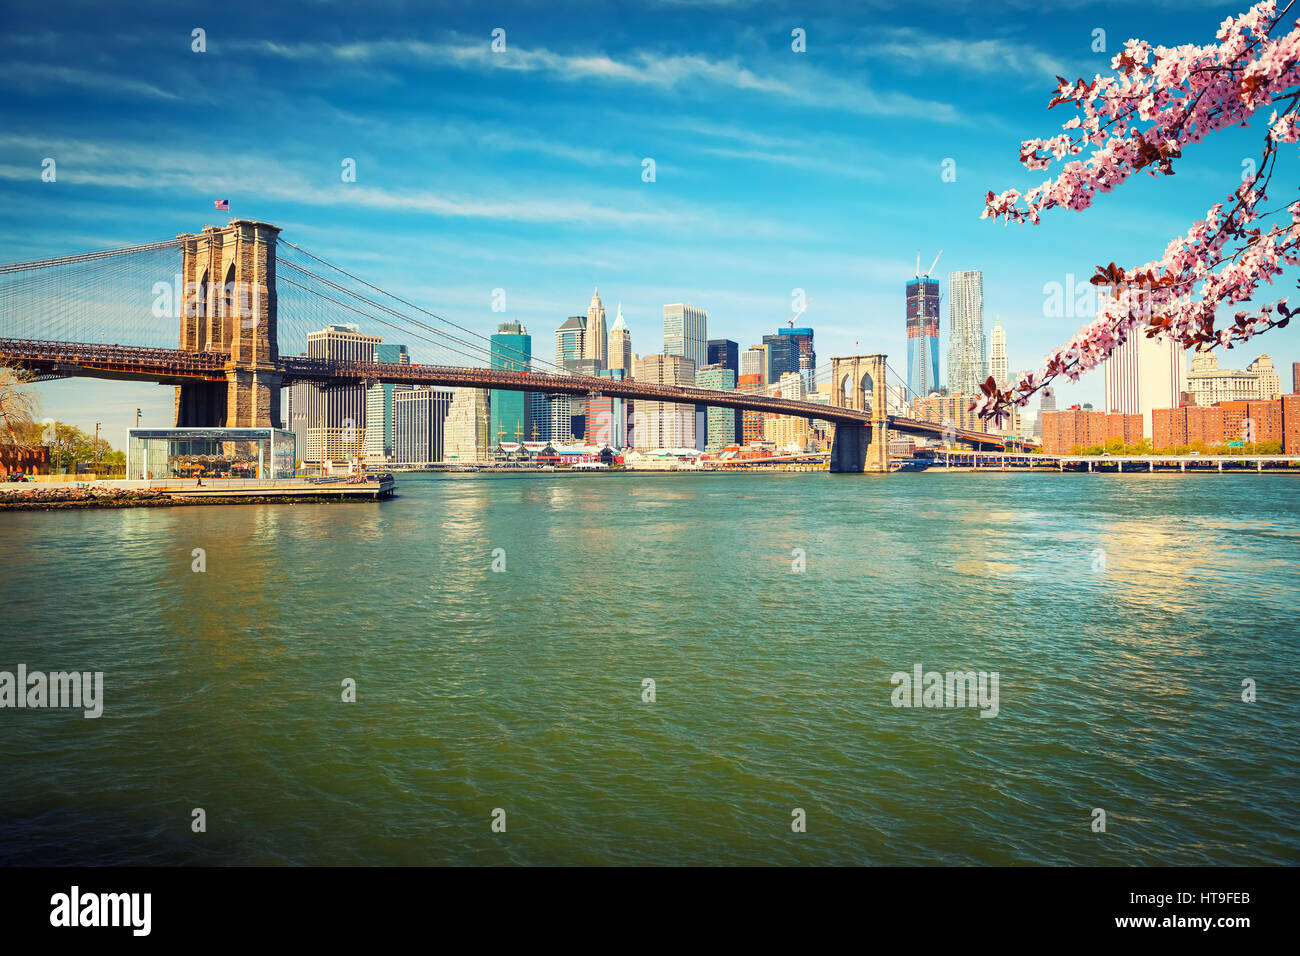 Il ponte di Brooklyn e Manhattan a molla, New York City Immagini Stock